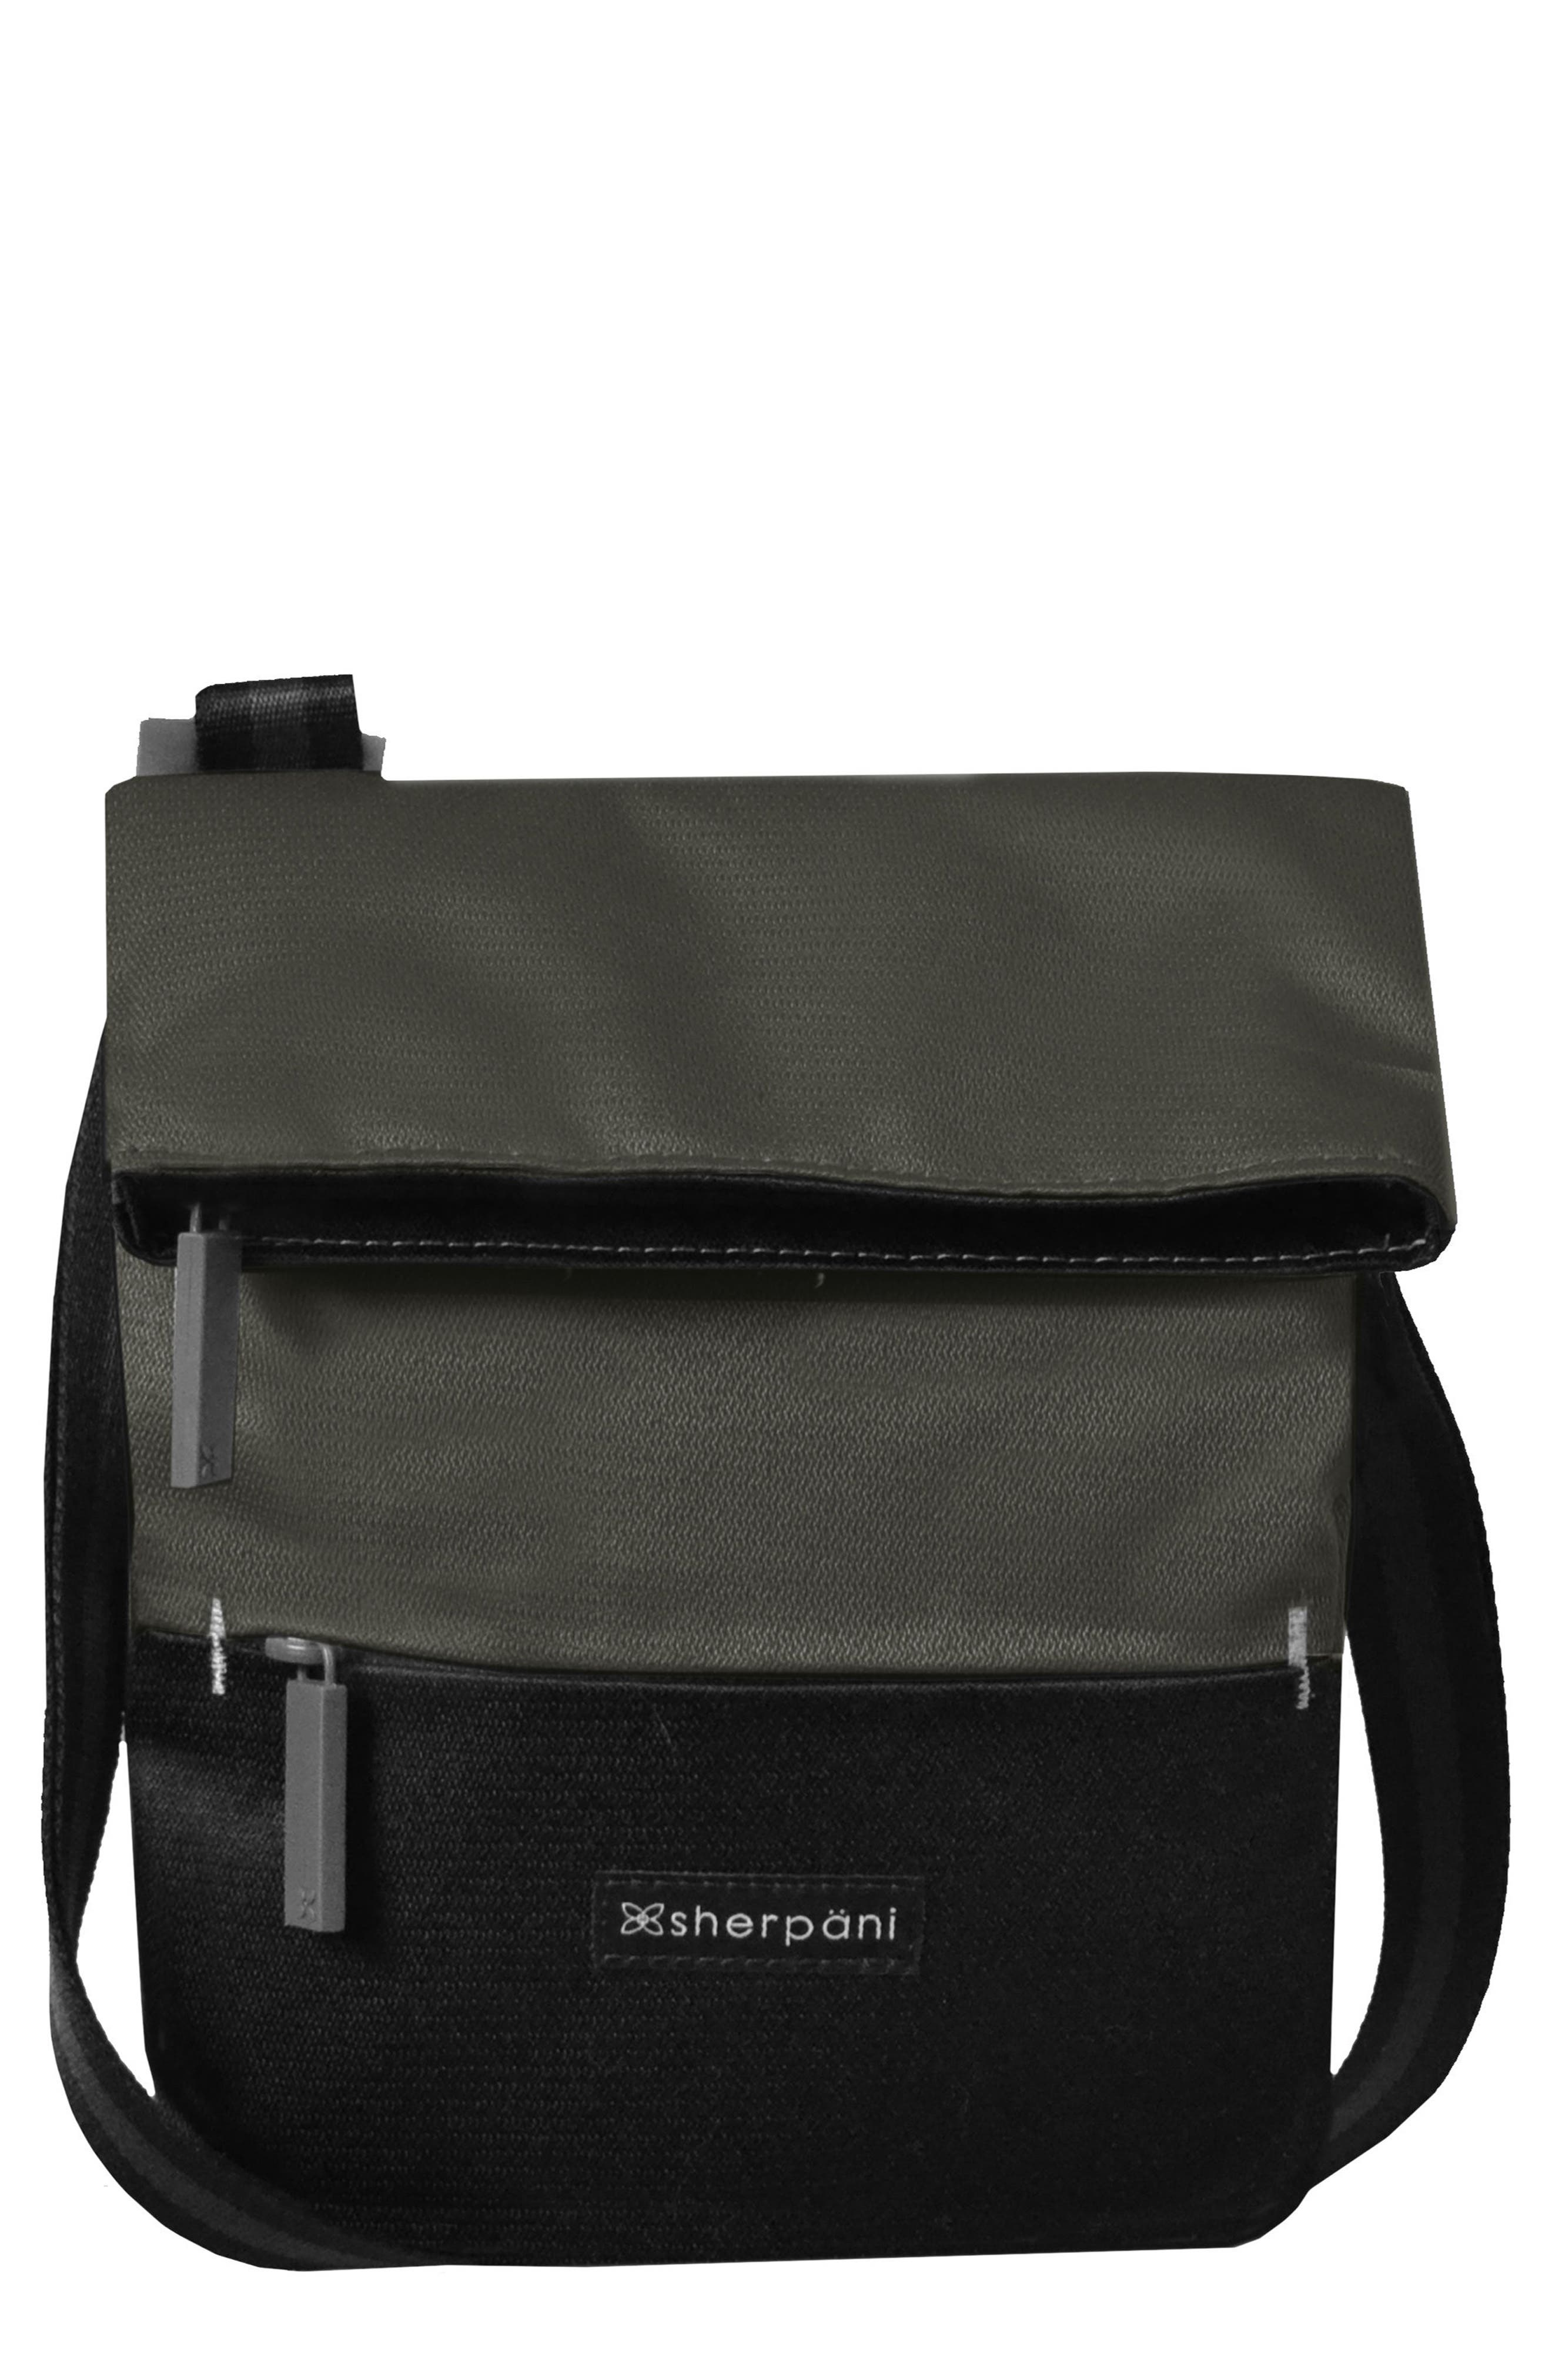 Sherpani Small Pica Crossbody Bag